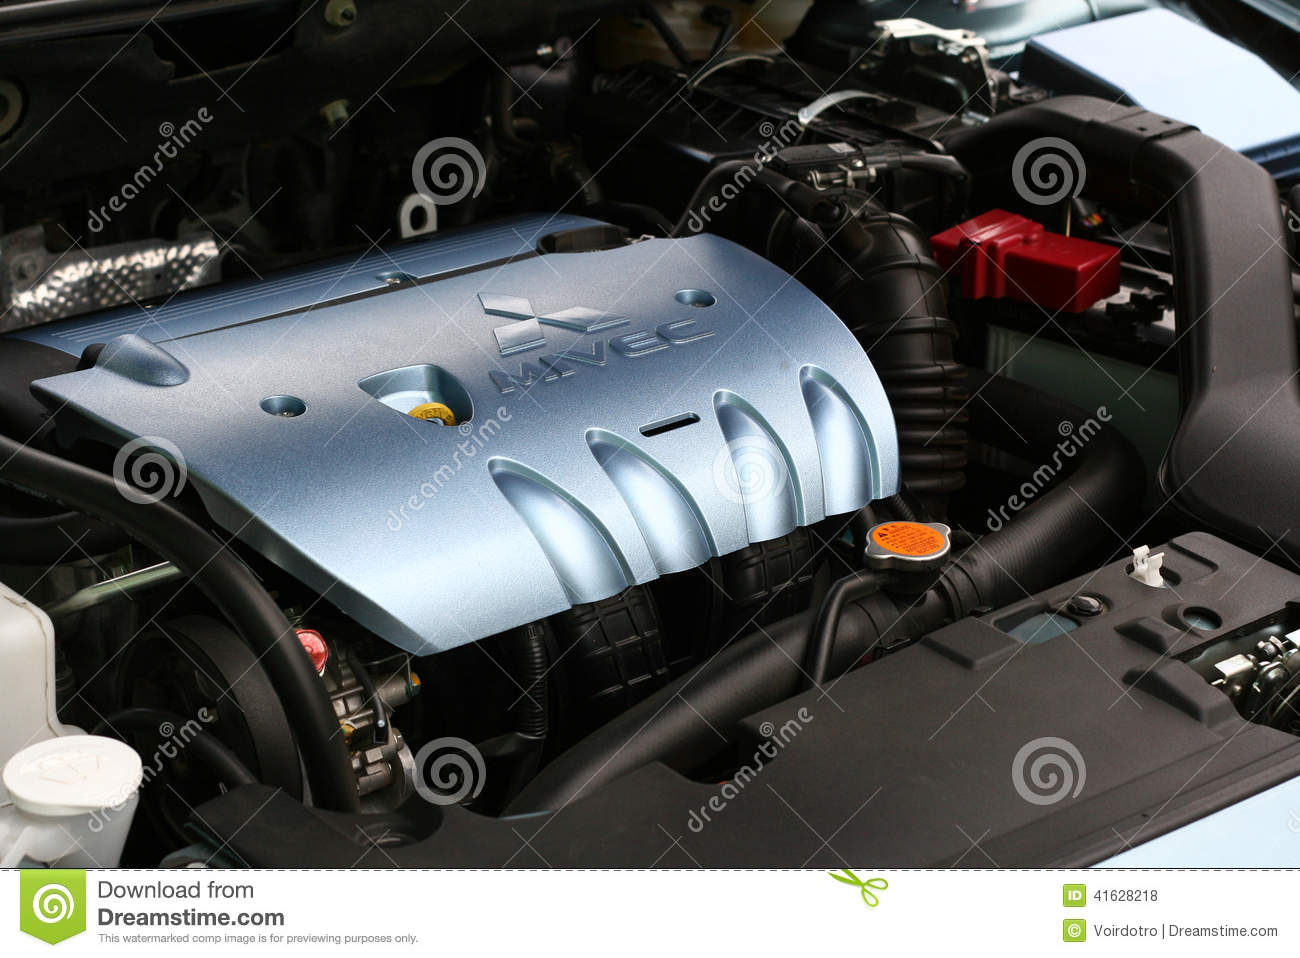 Mitsubishi Mivec Lancer Engine Top Editorial Stock Photo - Image: 41628218